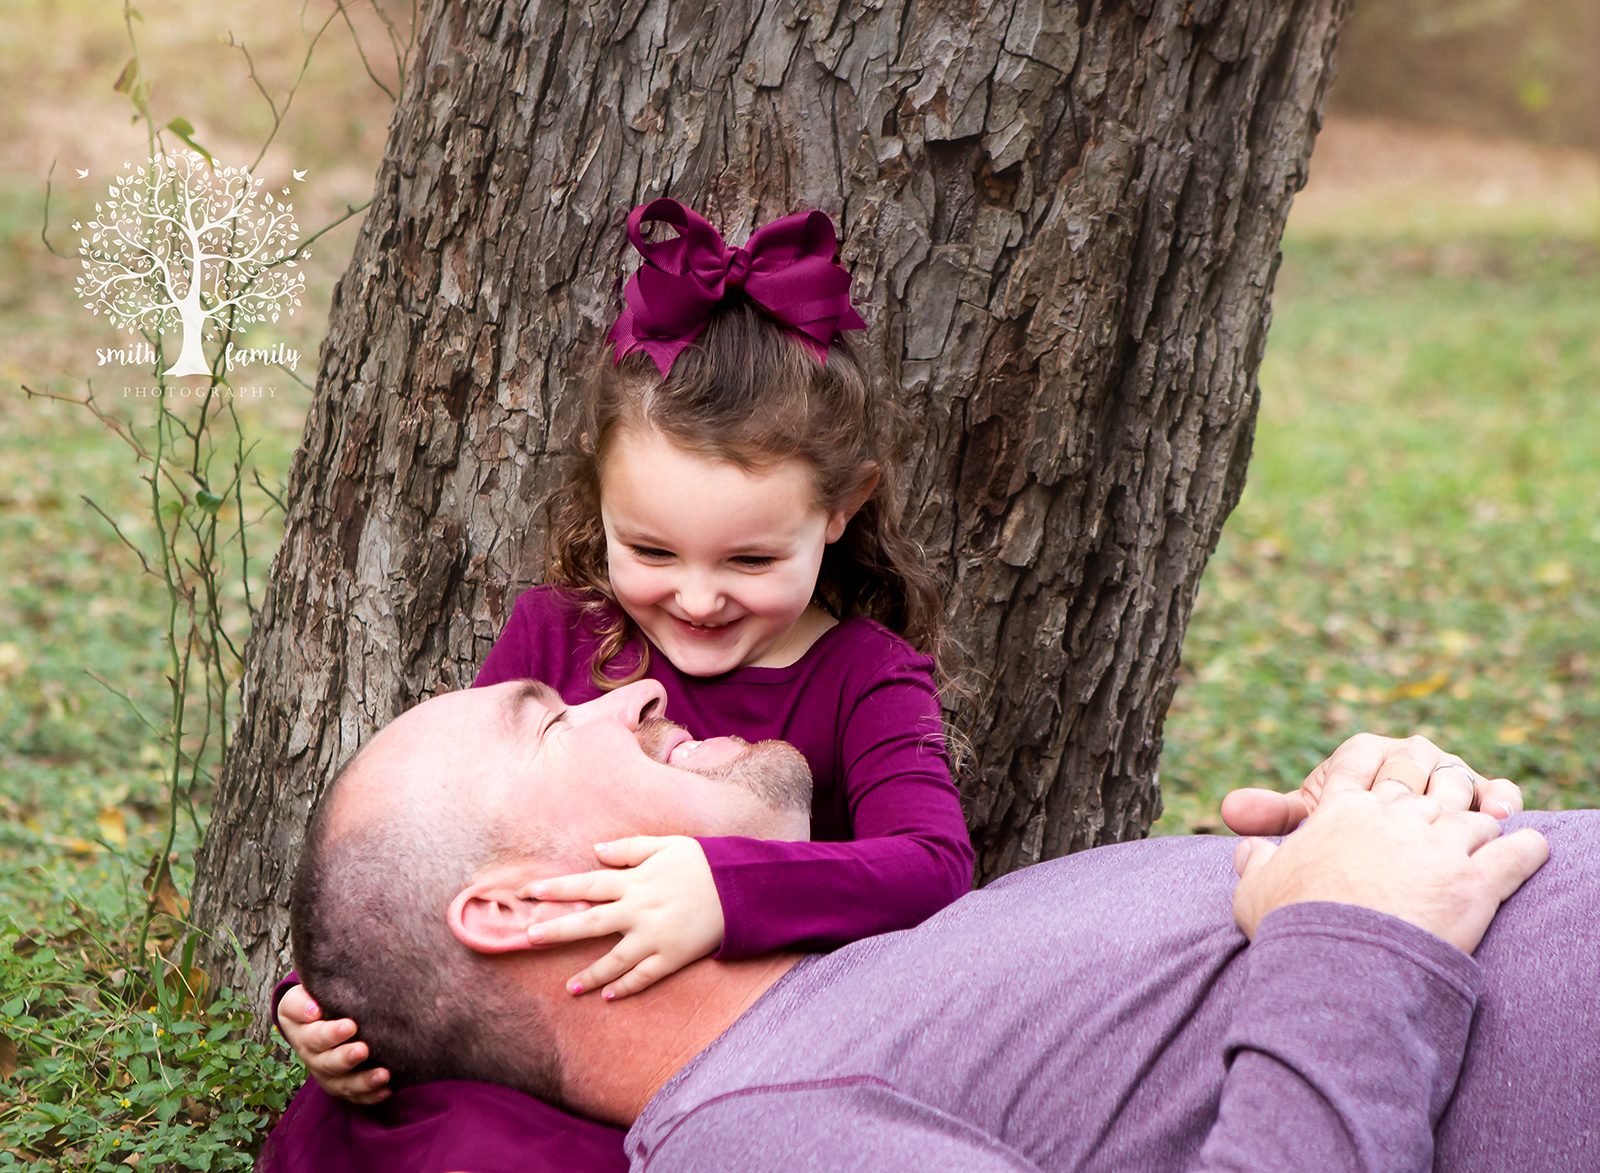 """Smith Family Photography went above and beyond for our daughters imagination photo shoot and our family pictures. Anna is very patient and is really good with kids. She captured great moments and also will give you poses you specifically ask for. We had such a fun afternoon with her taking our pictures!"" - Crystal L."